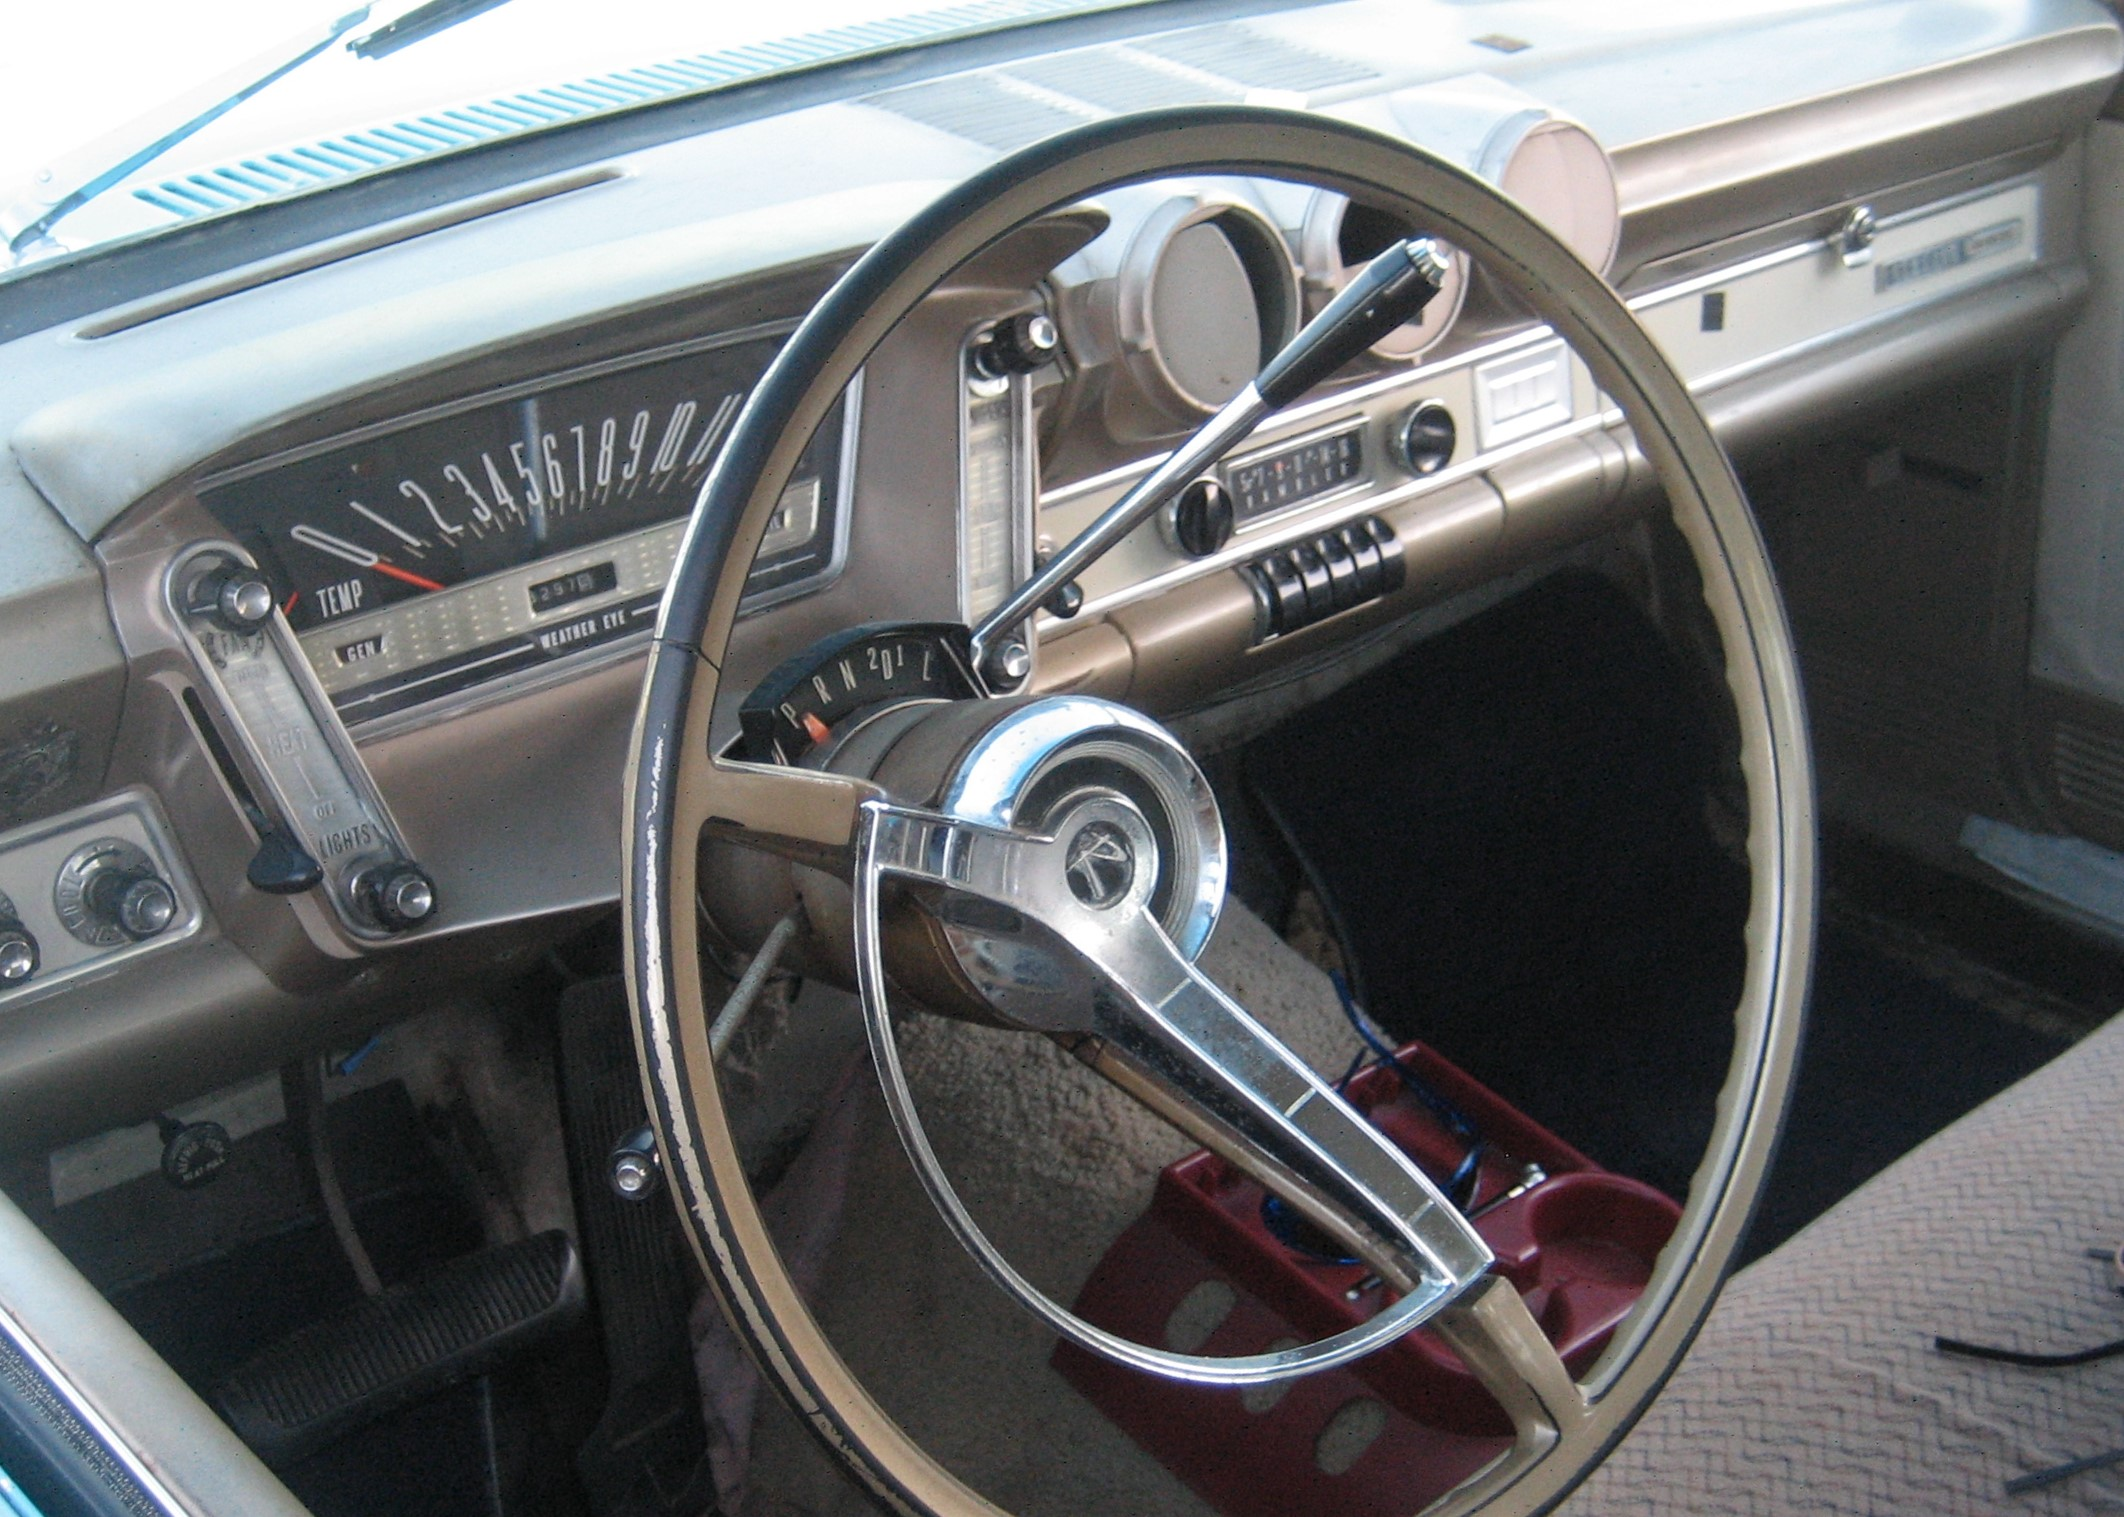 1963 Rambler dashboard